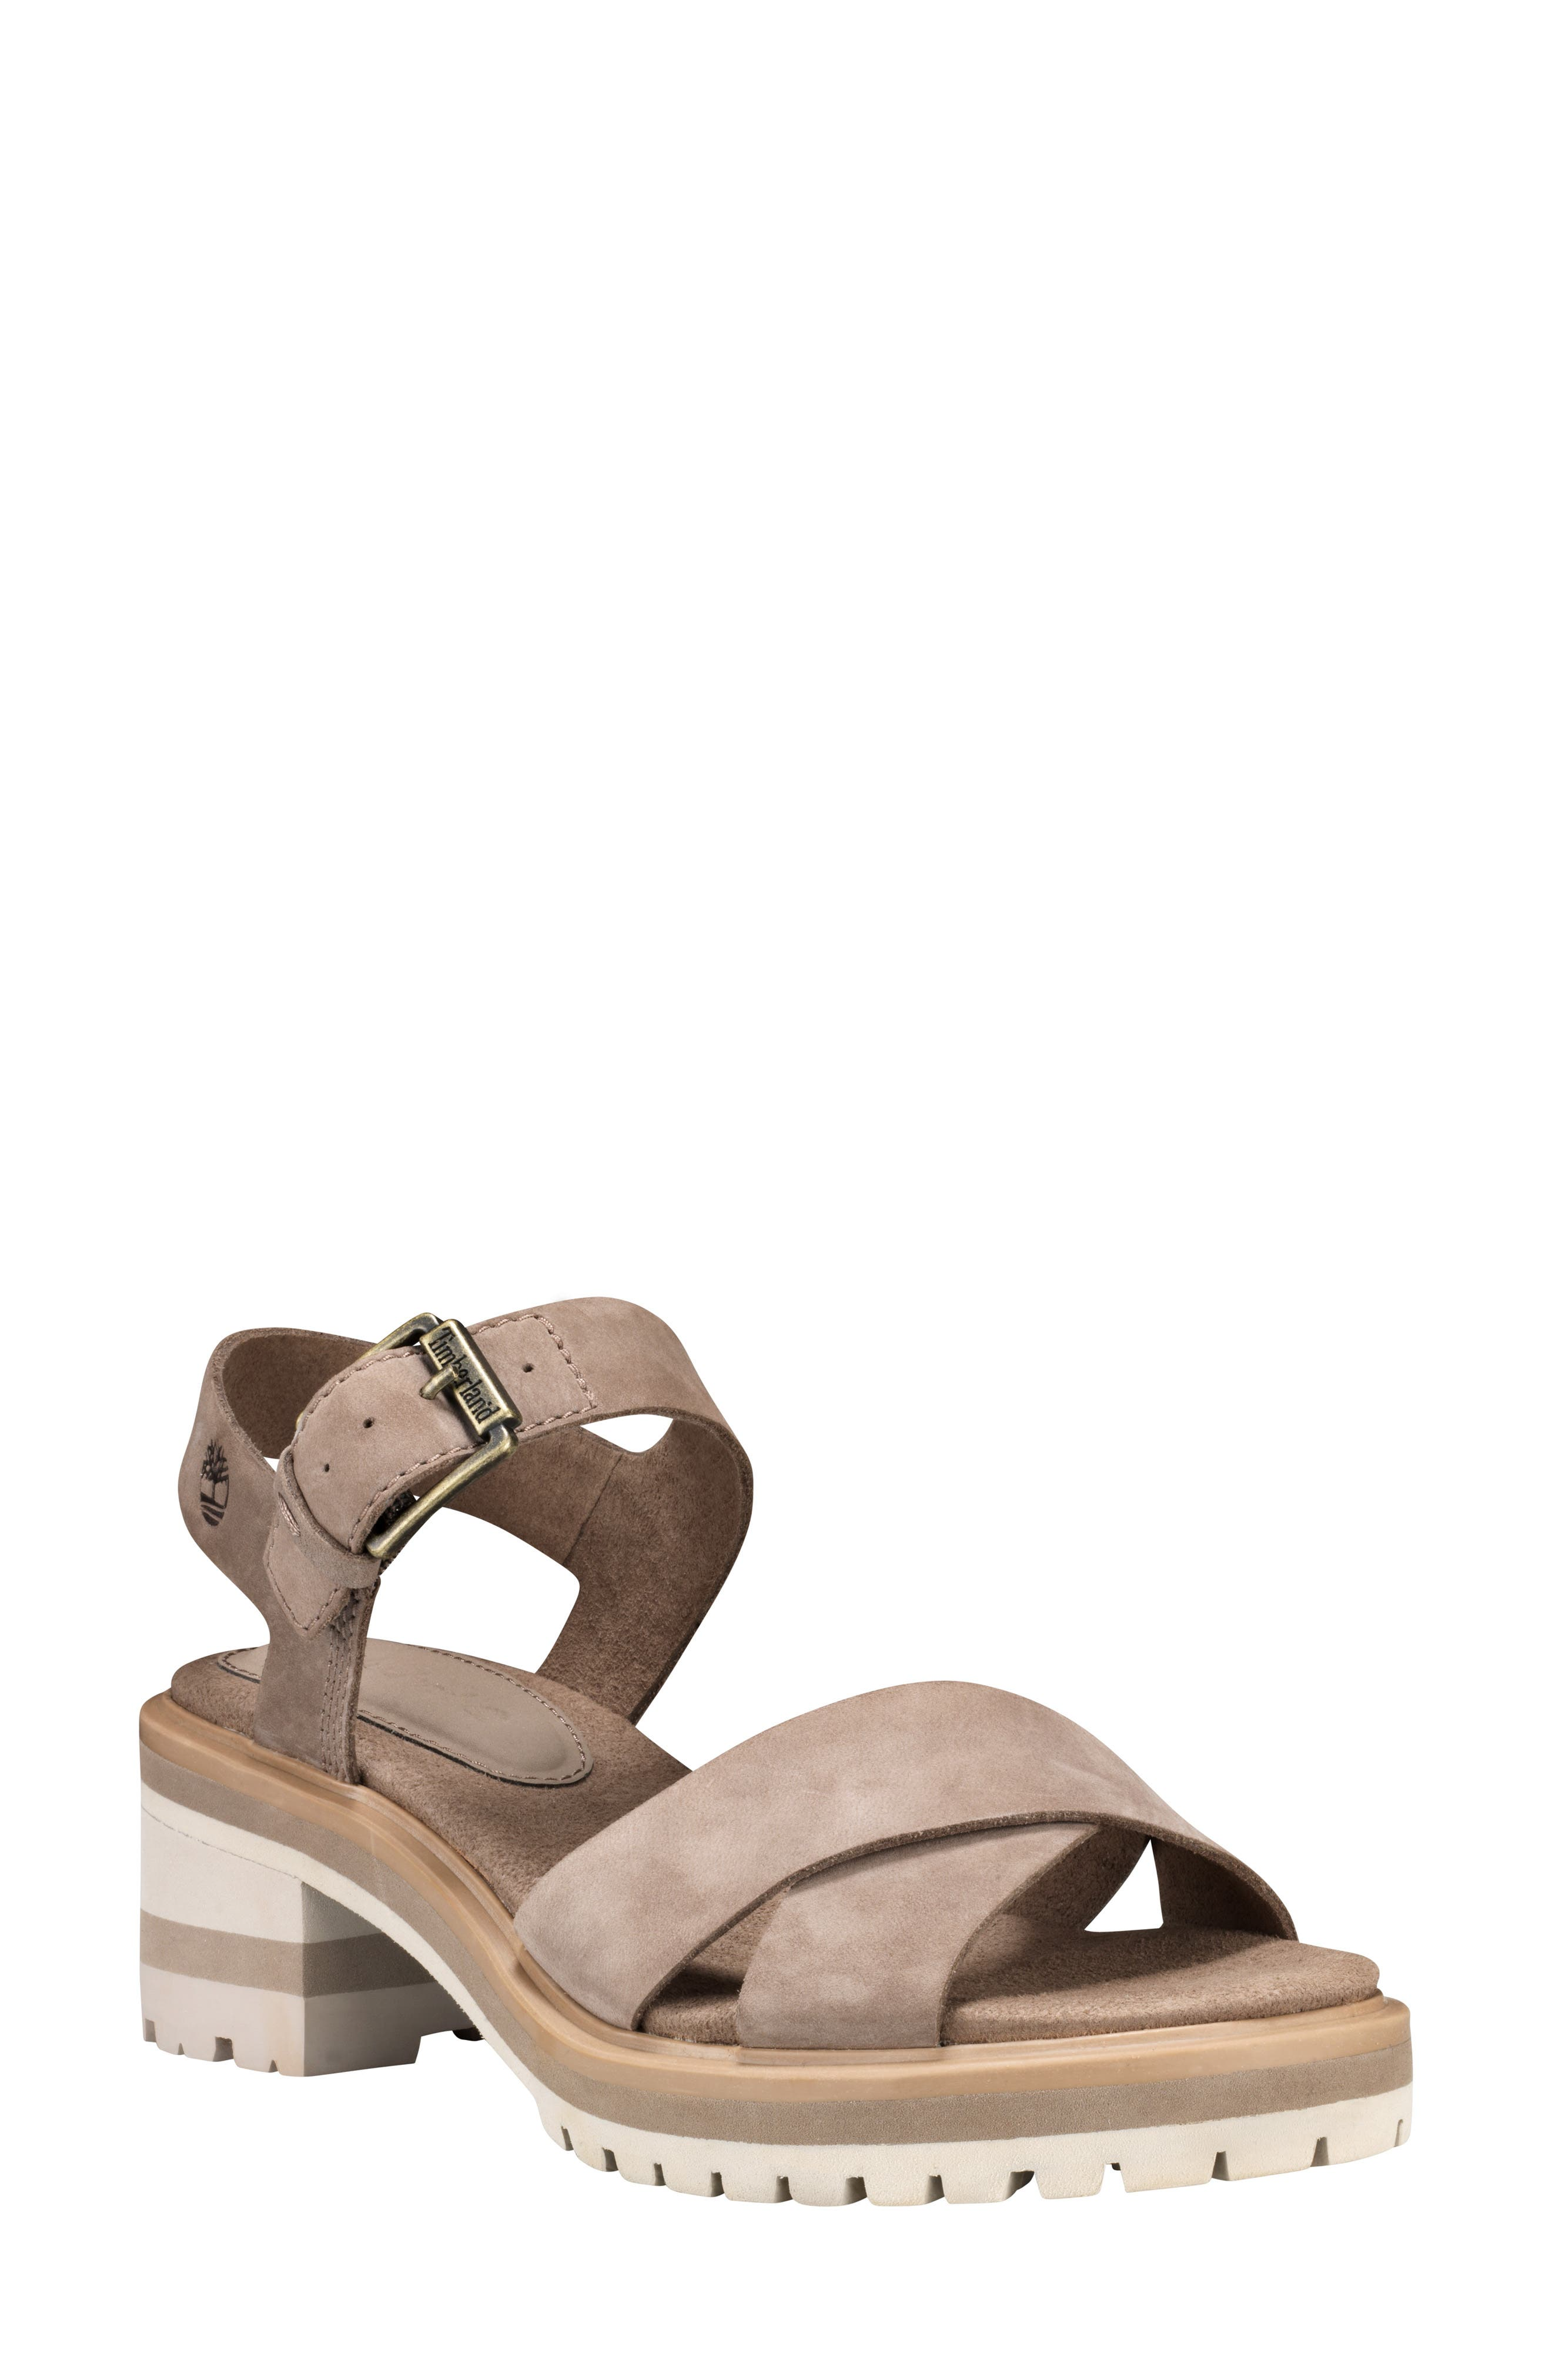 TIMBERLAND,                             Violet March Crisscross Sandal,                             Main thumbnail 1, color,                             TAUPE NUBUCK LEATHER